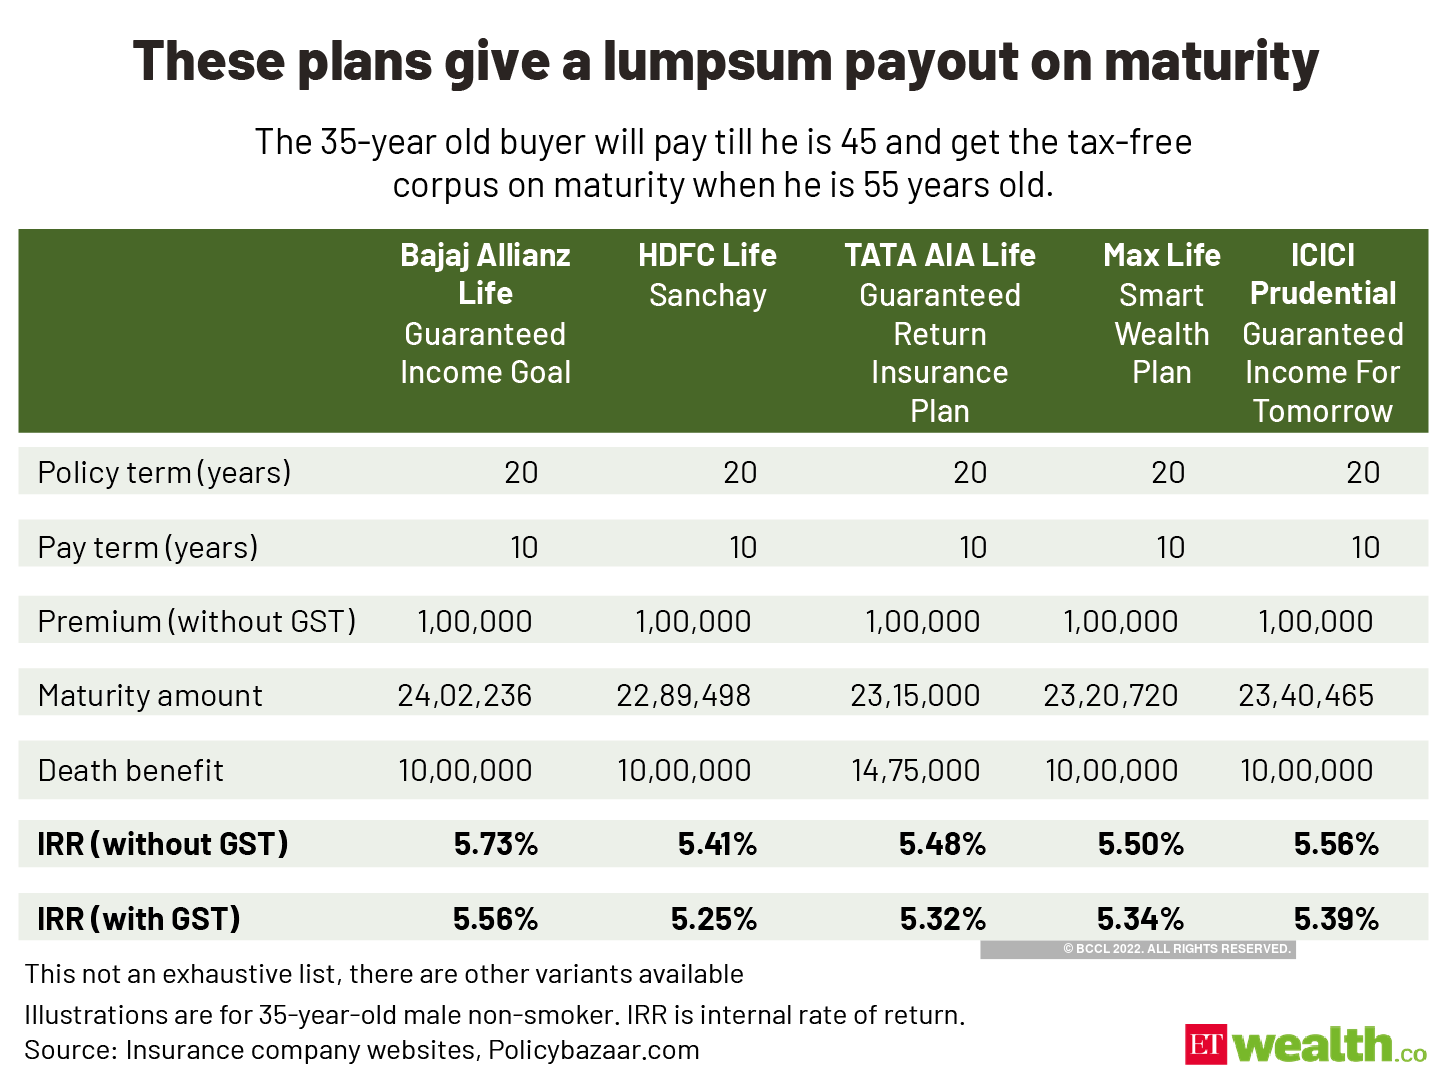 These plans give a lumpsum payout on maturity@2x